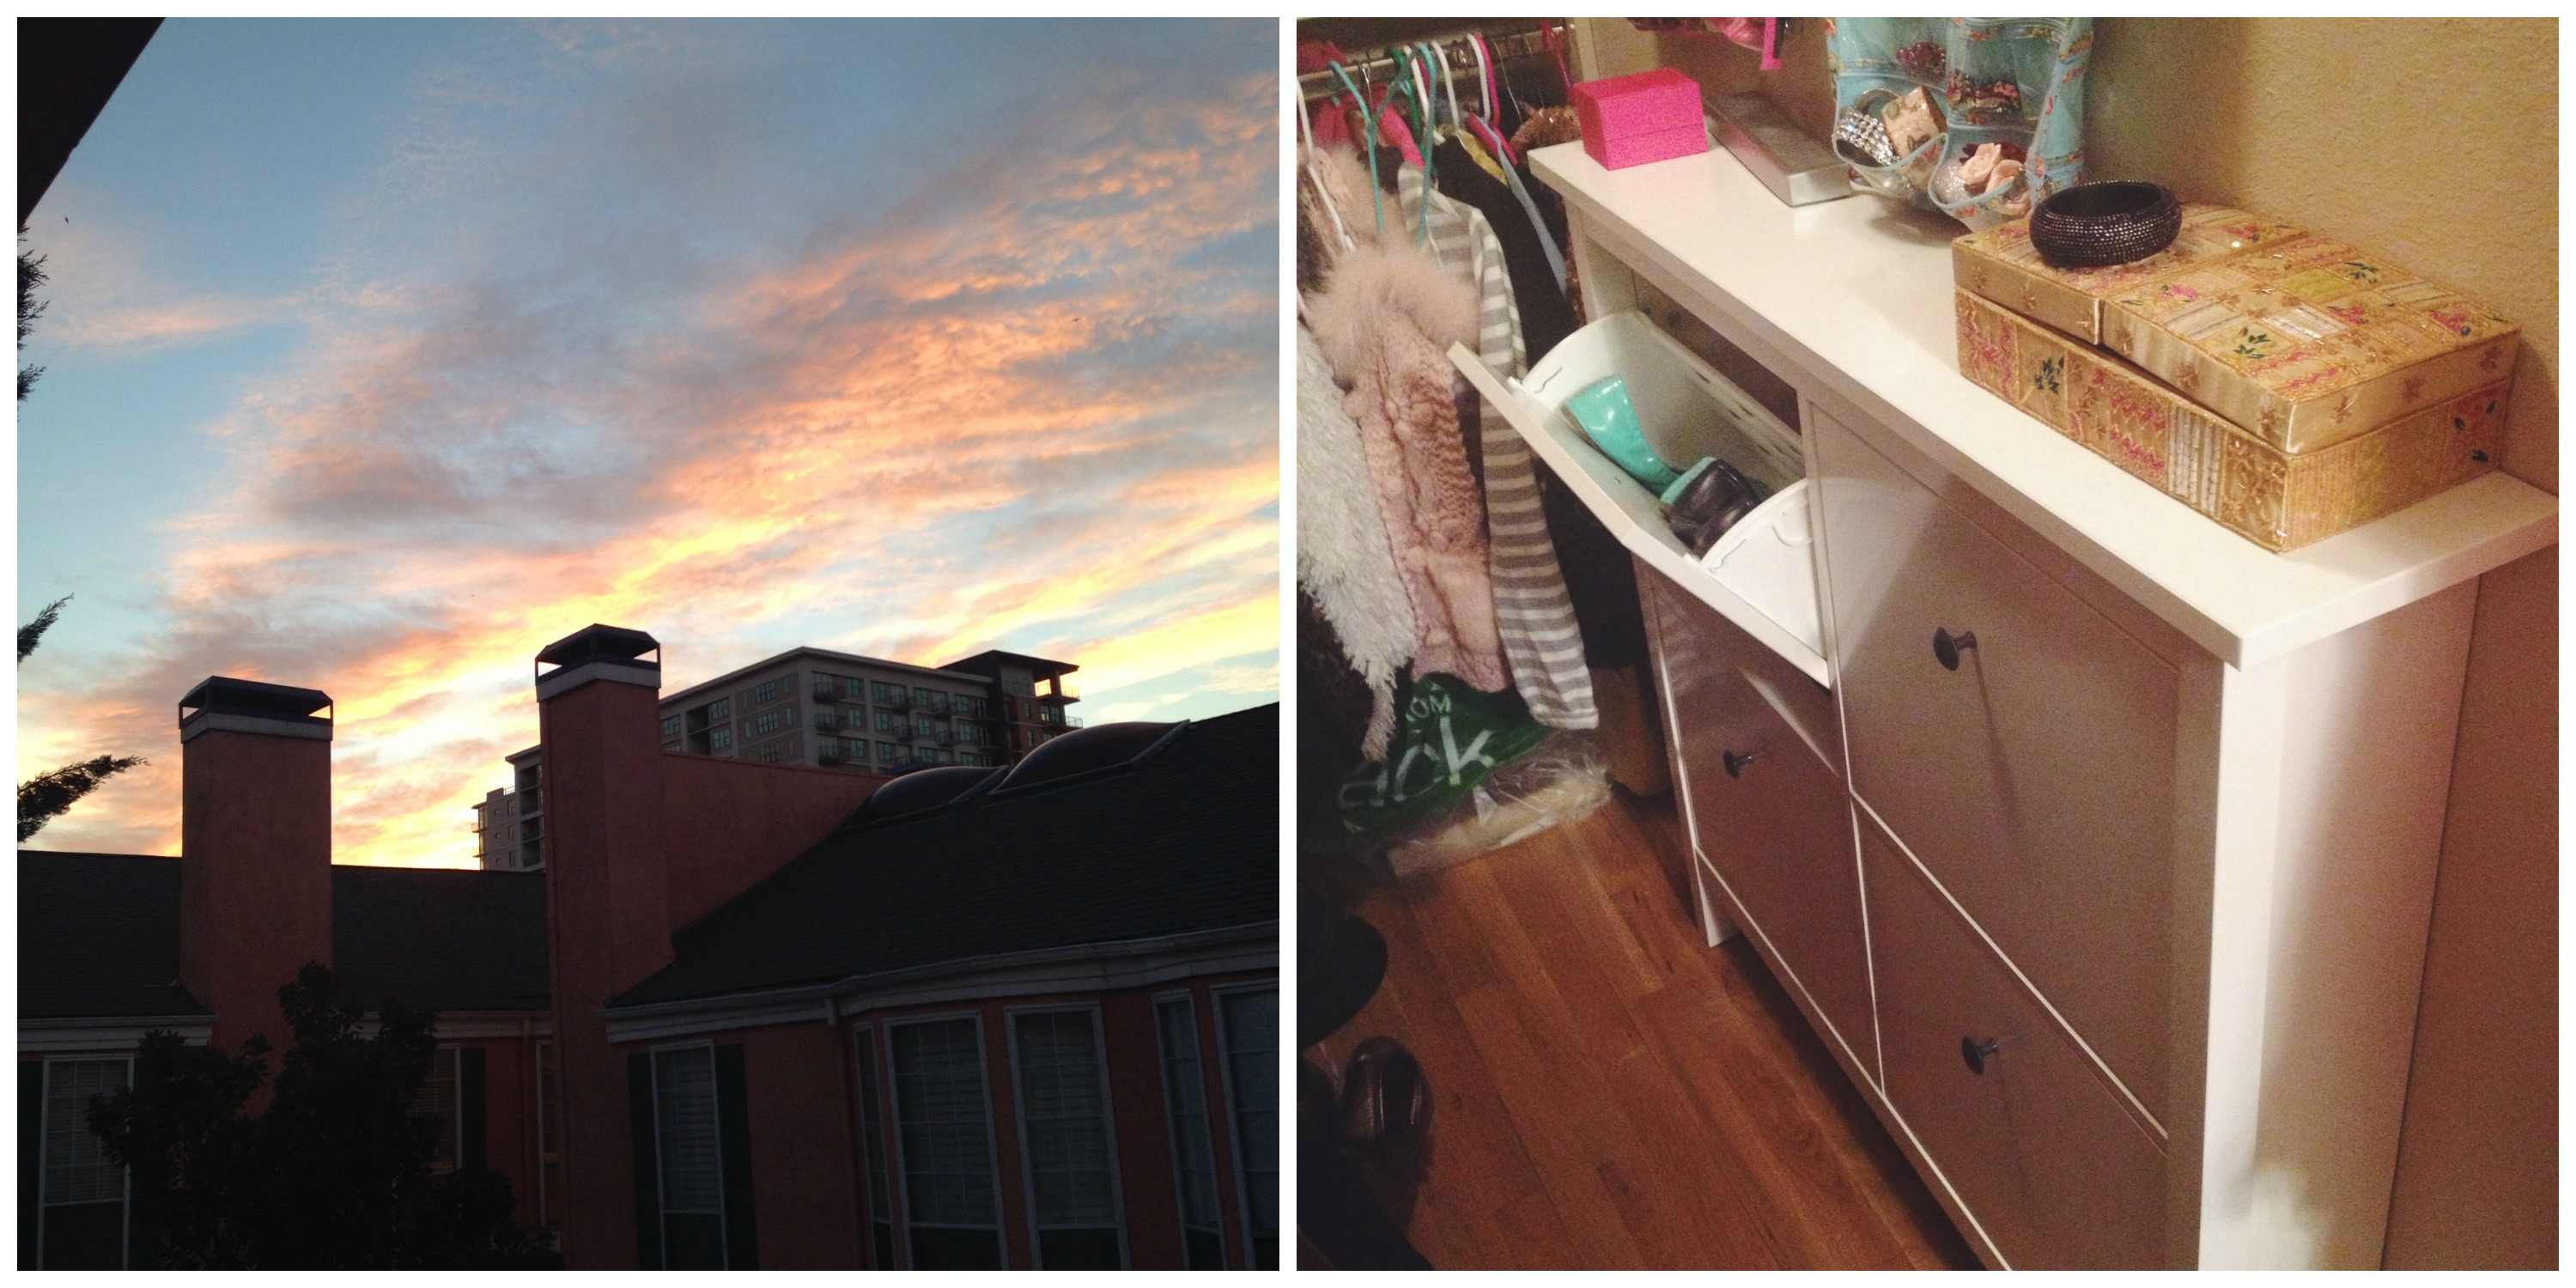 Sunset & Shoe Cabinet